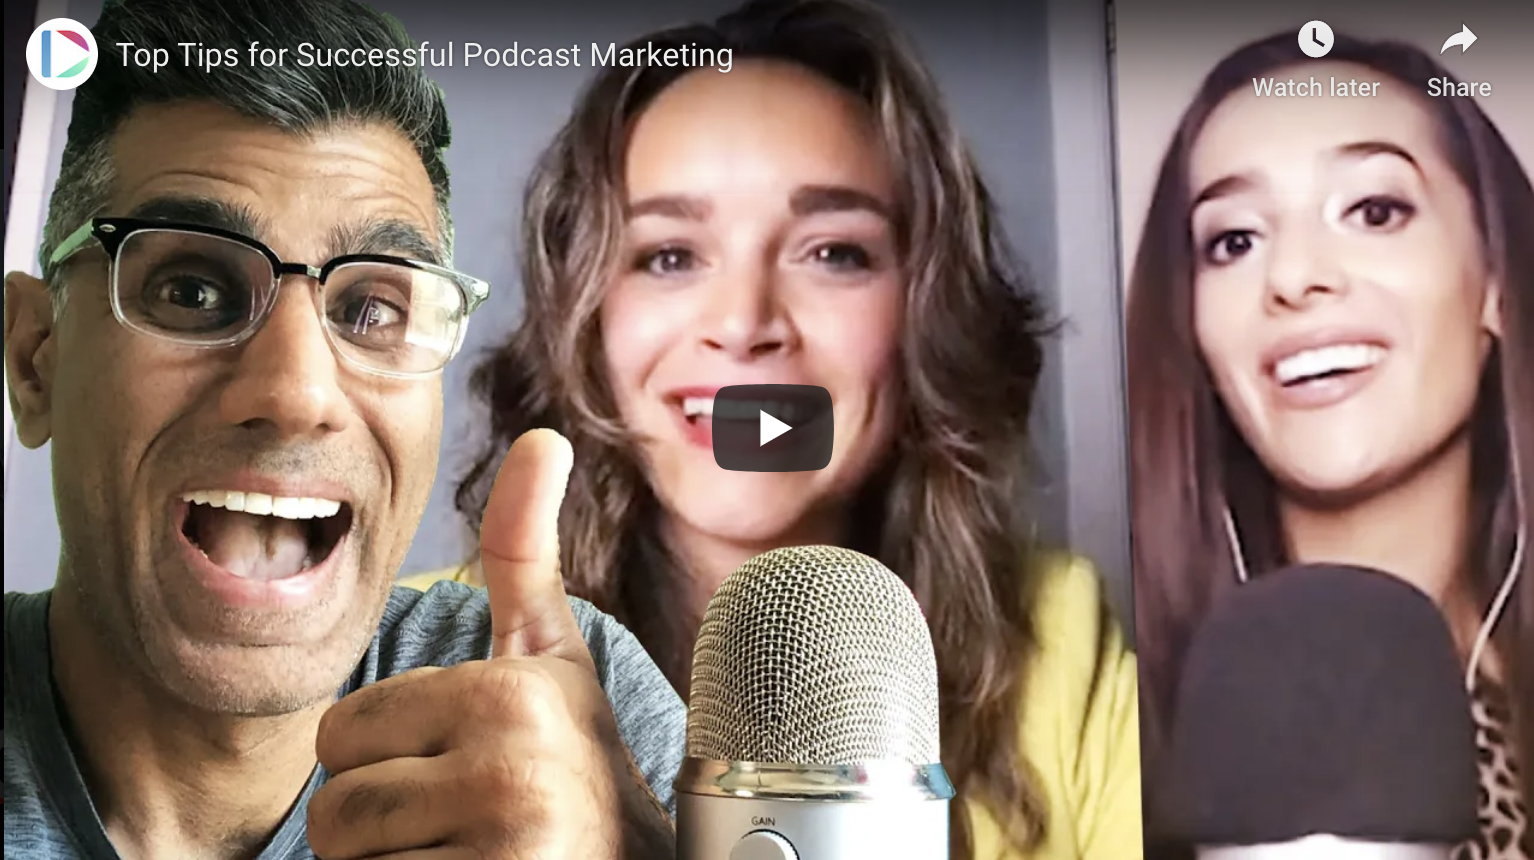 Top Tips for Successful Podcast Marketing